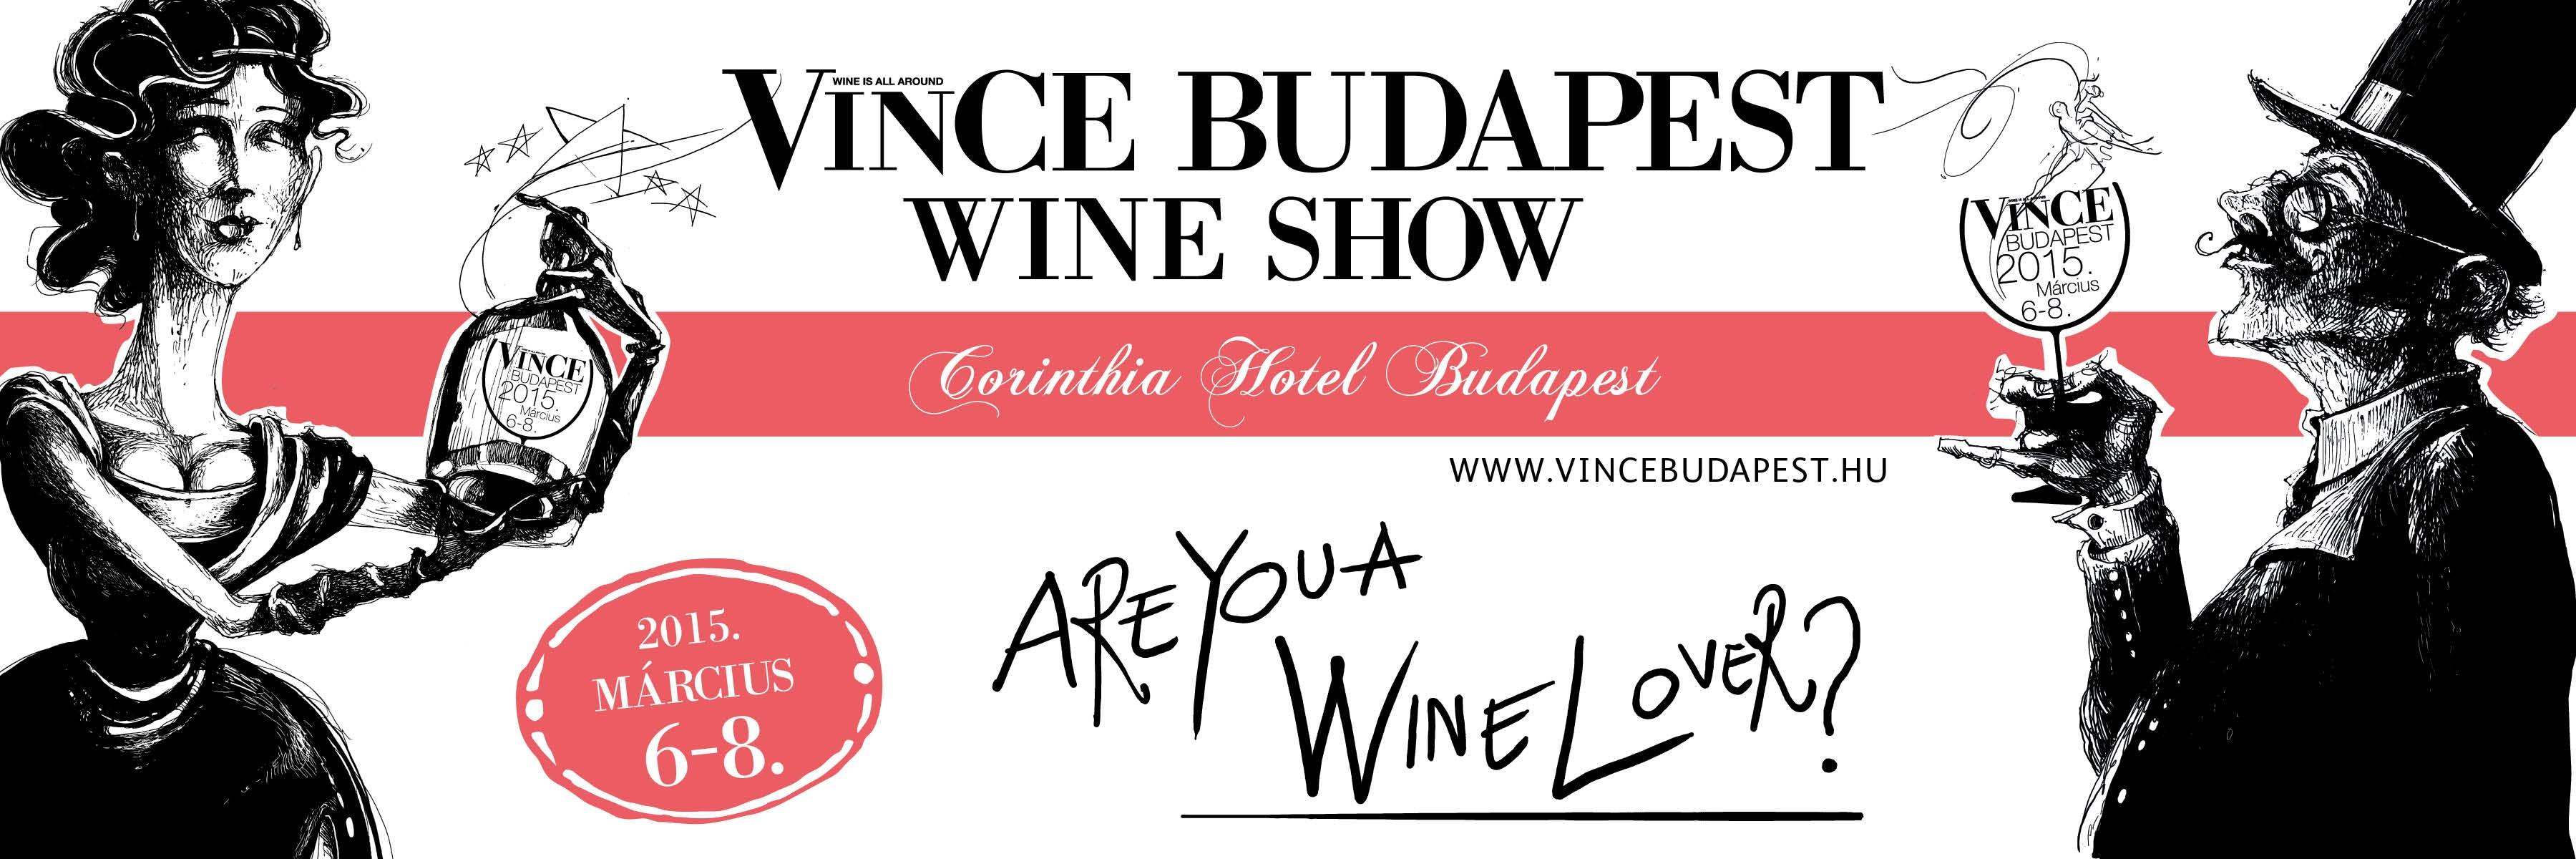 VinCE Budapest Wine Show, Corinthia Hotel Budapest, 6 – 8 March